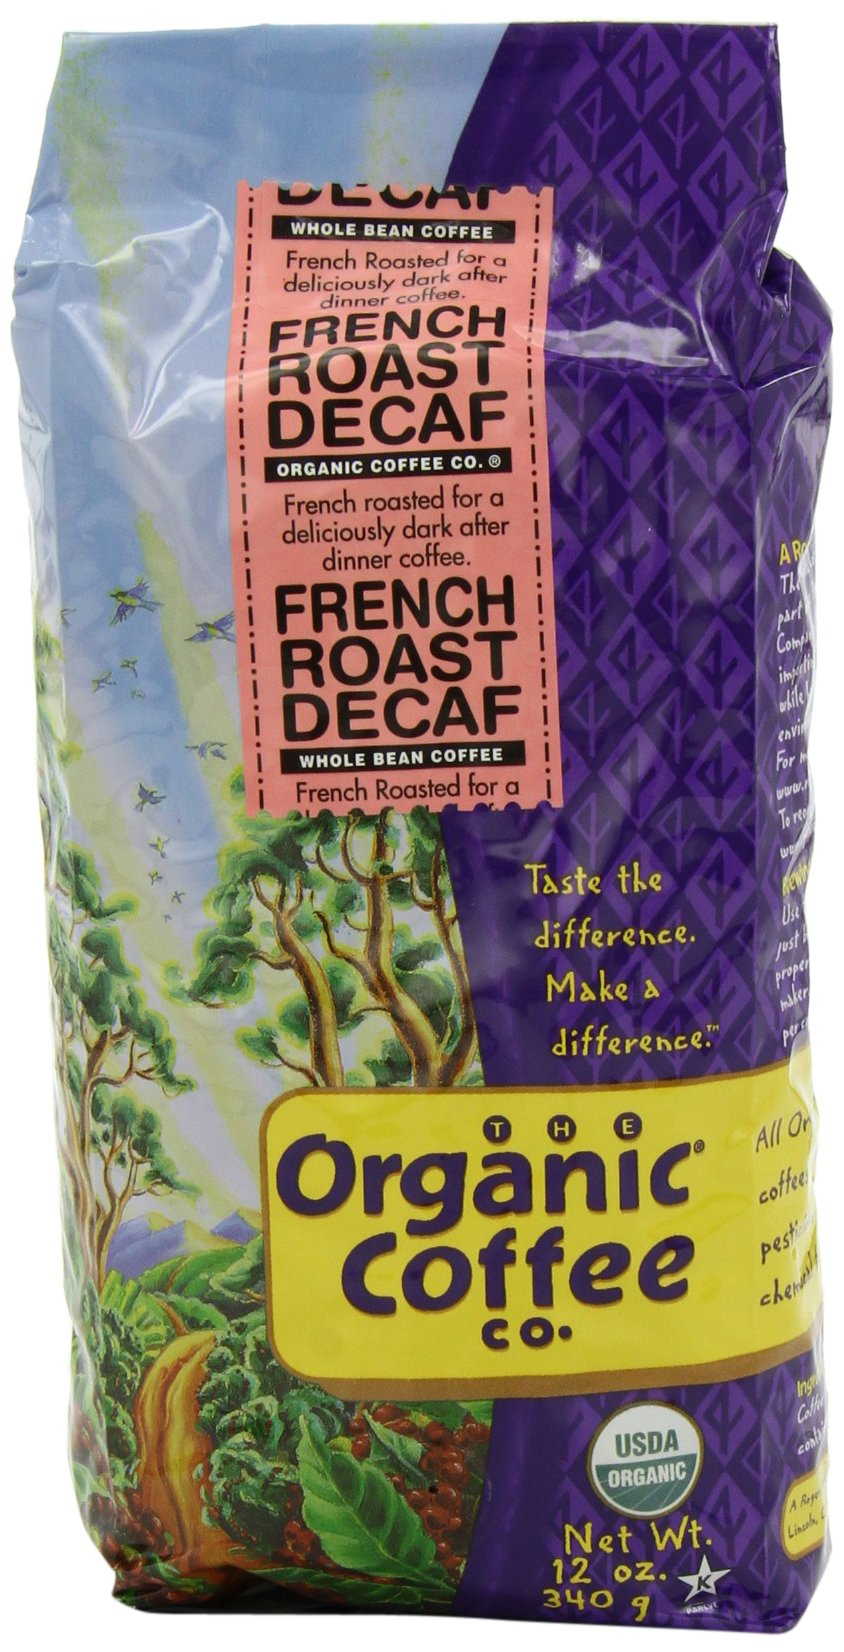 The Organic Coffee Co. Whole Bean, Decaf French Roast, 12 Ounce (Pack of 3) by The Organic Coffee Co.